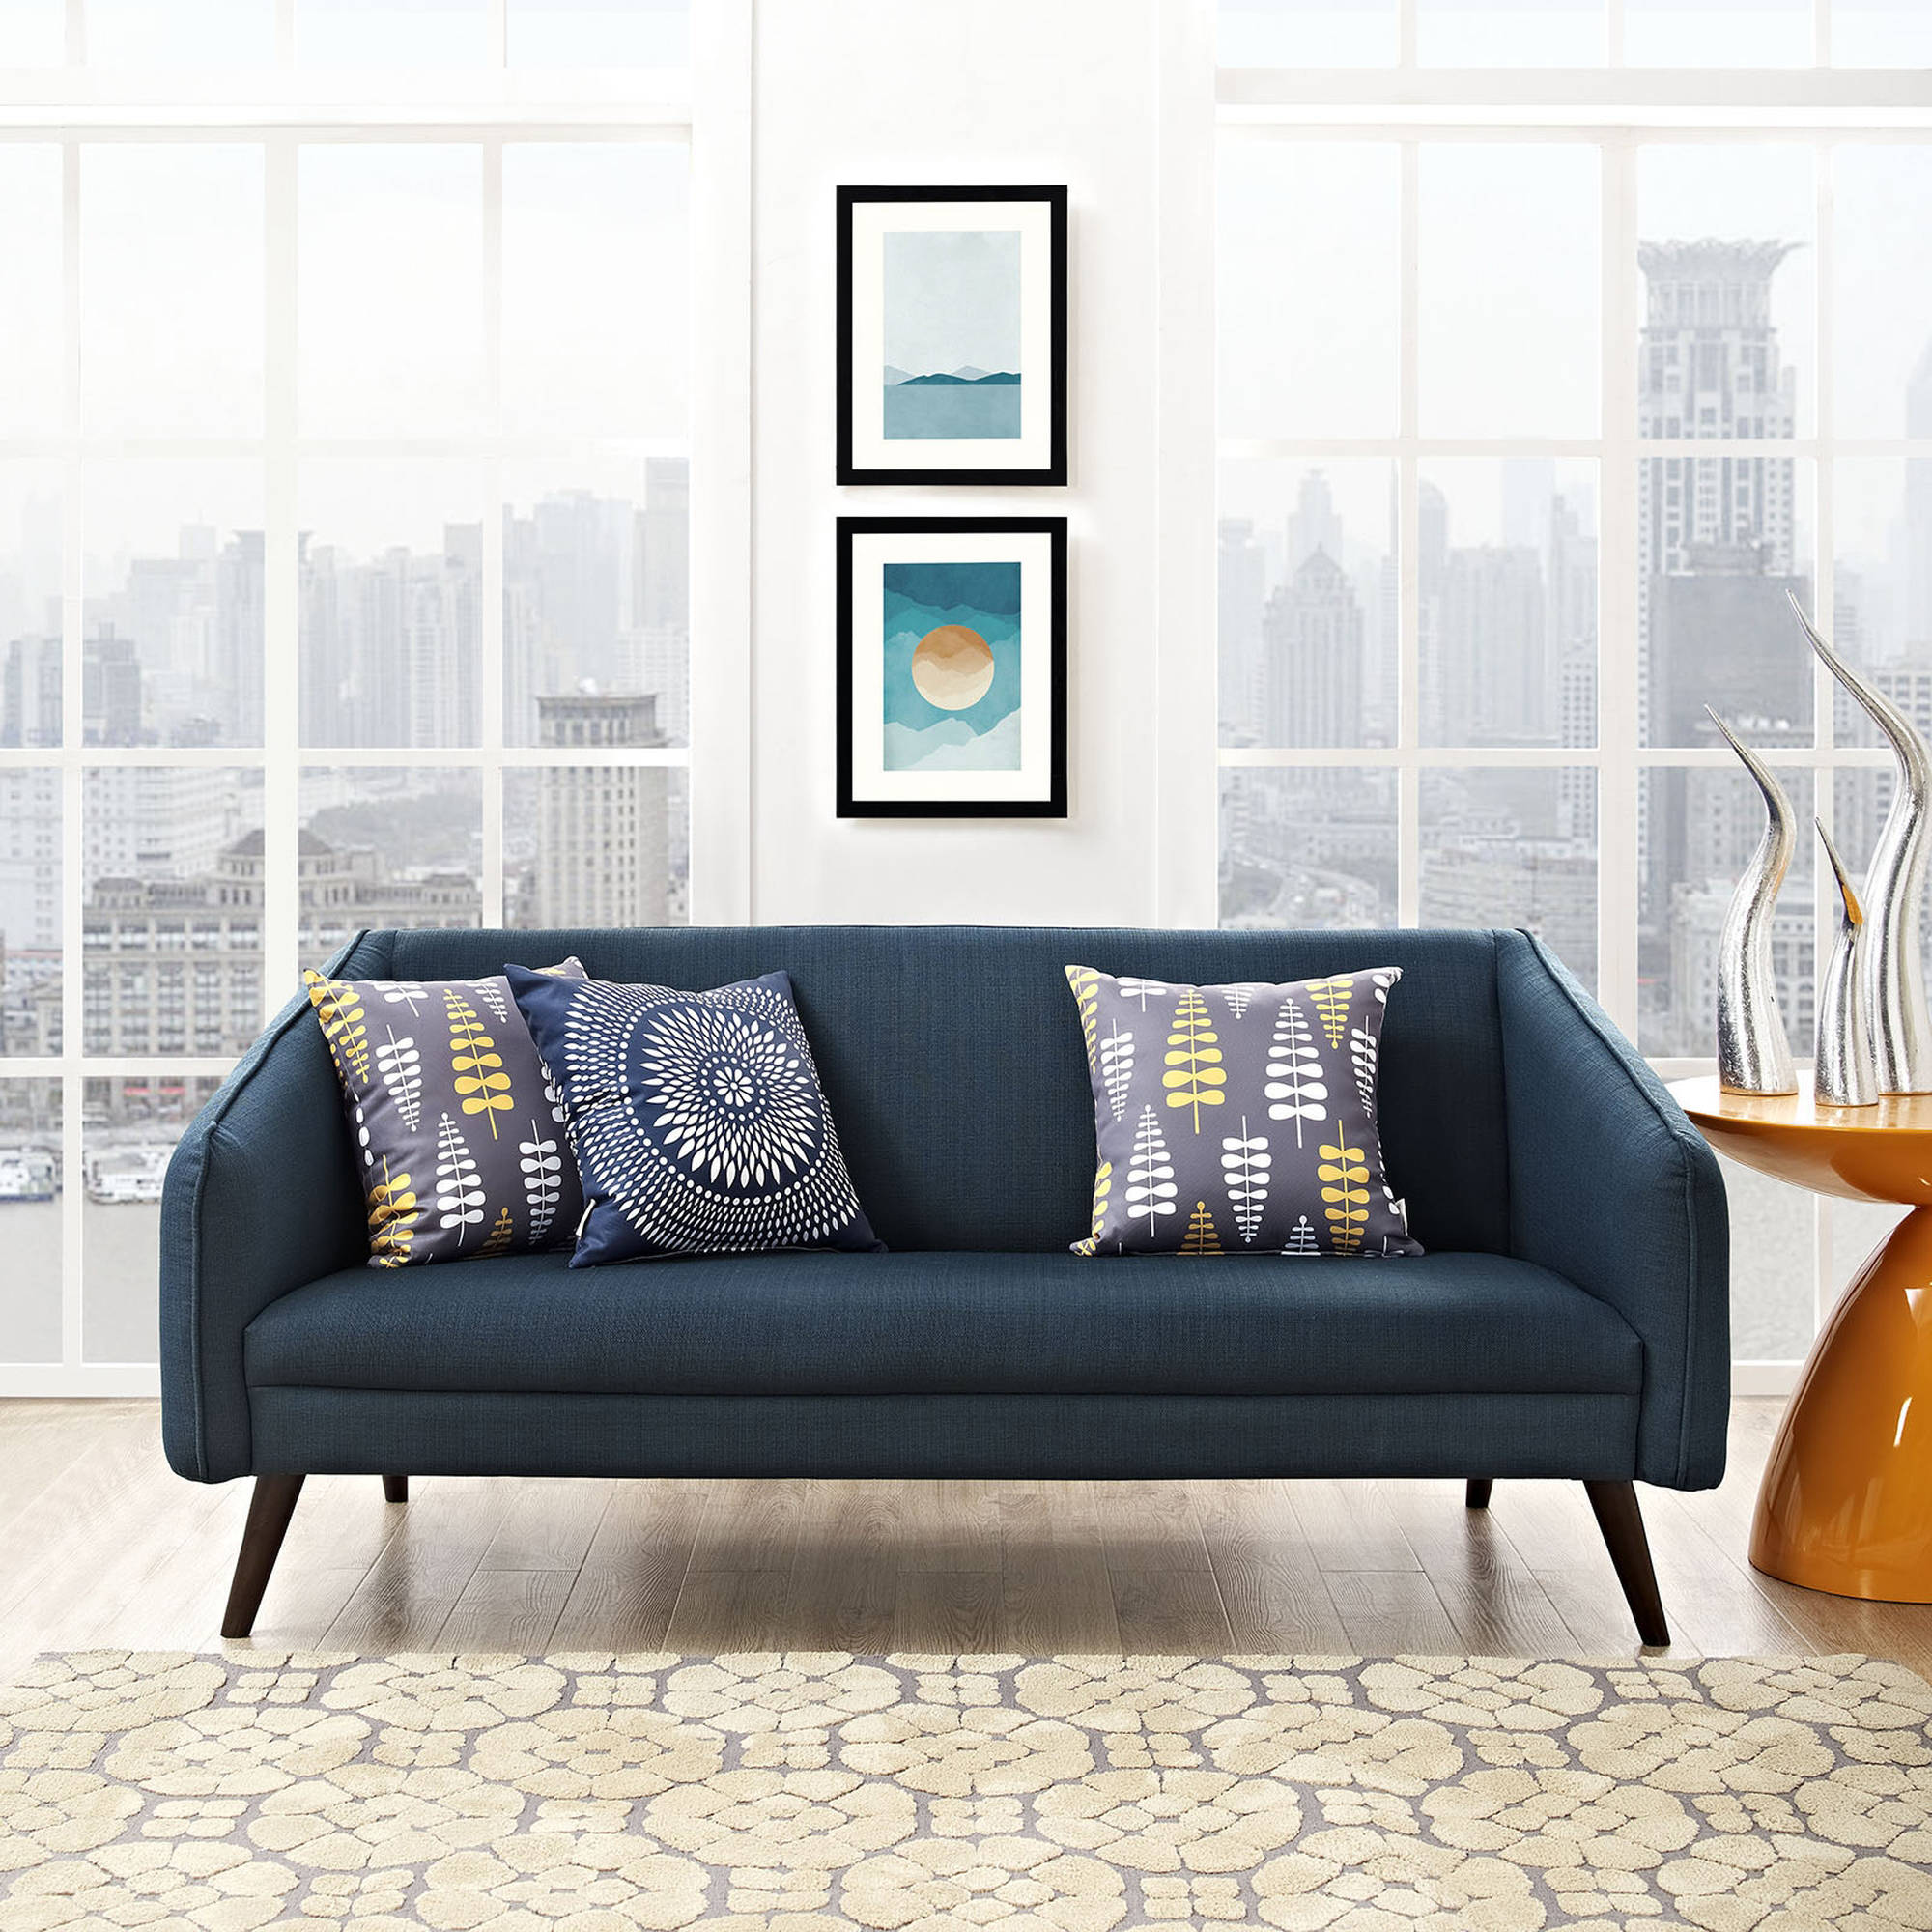 Modway Slide Contemporary Upholstered Sofa, Multiple Colors